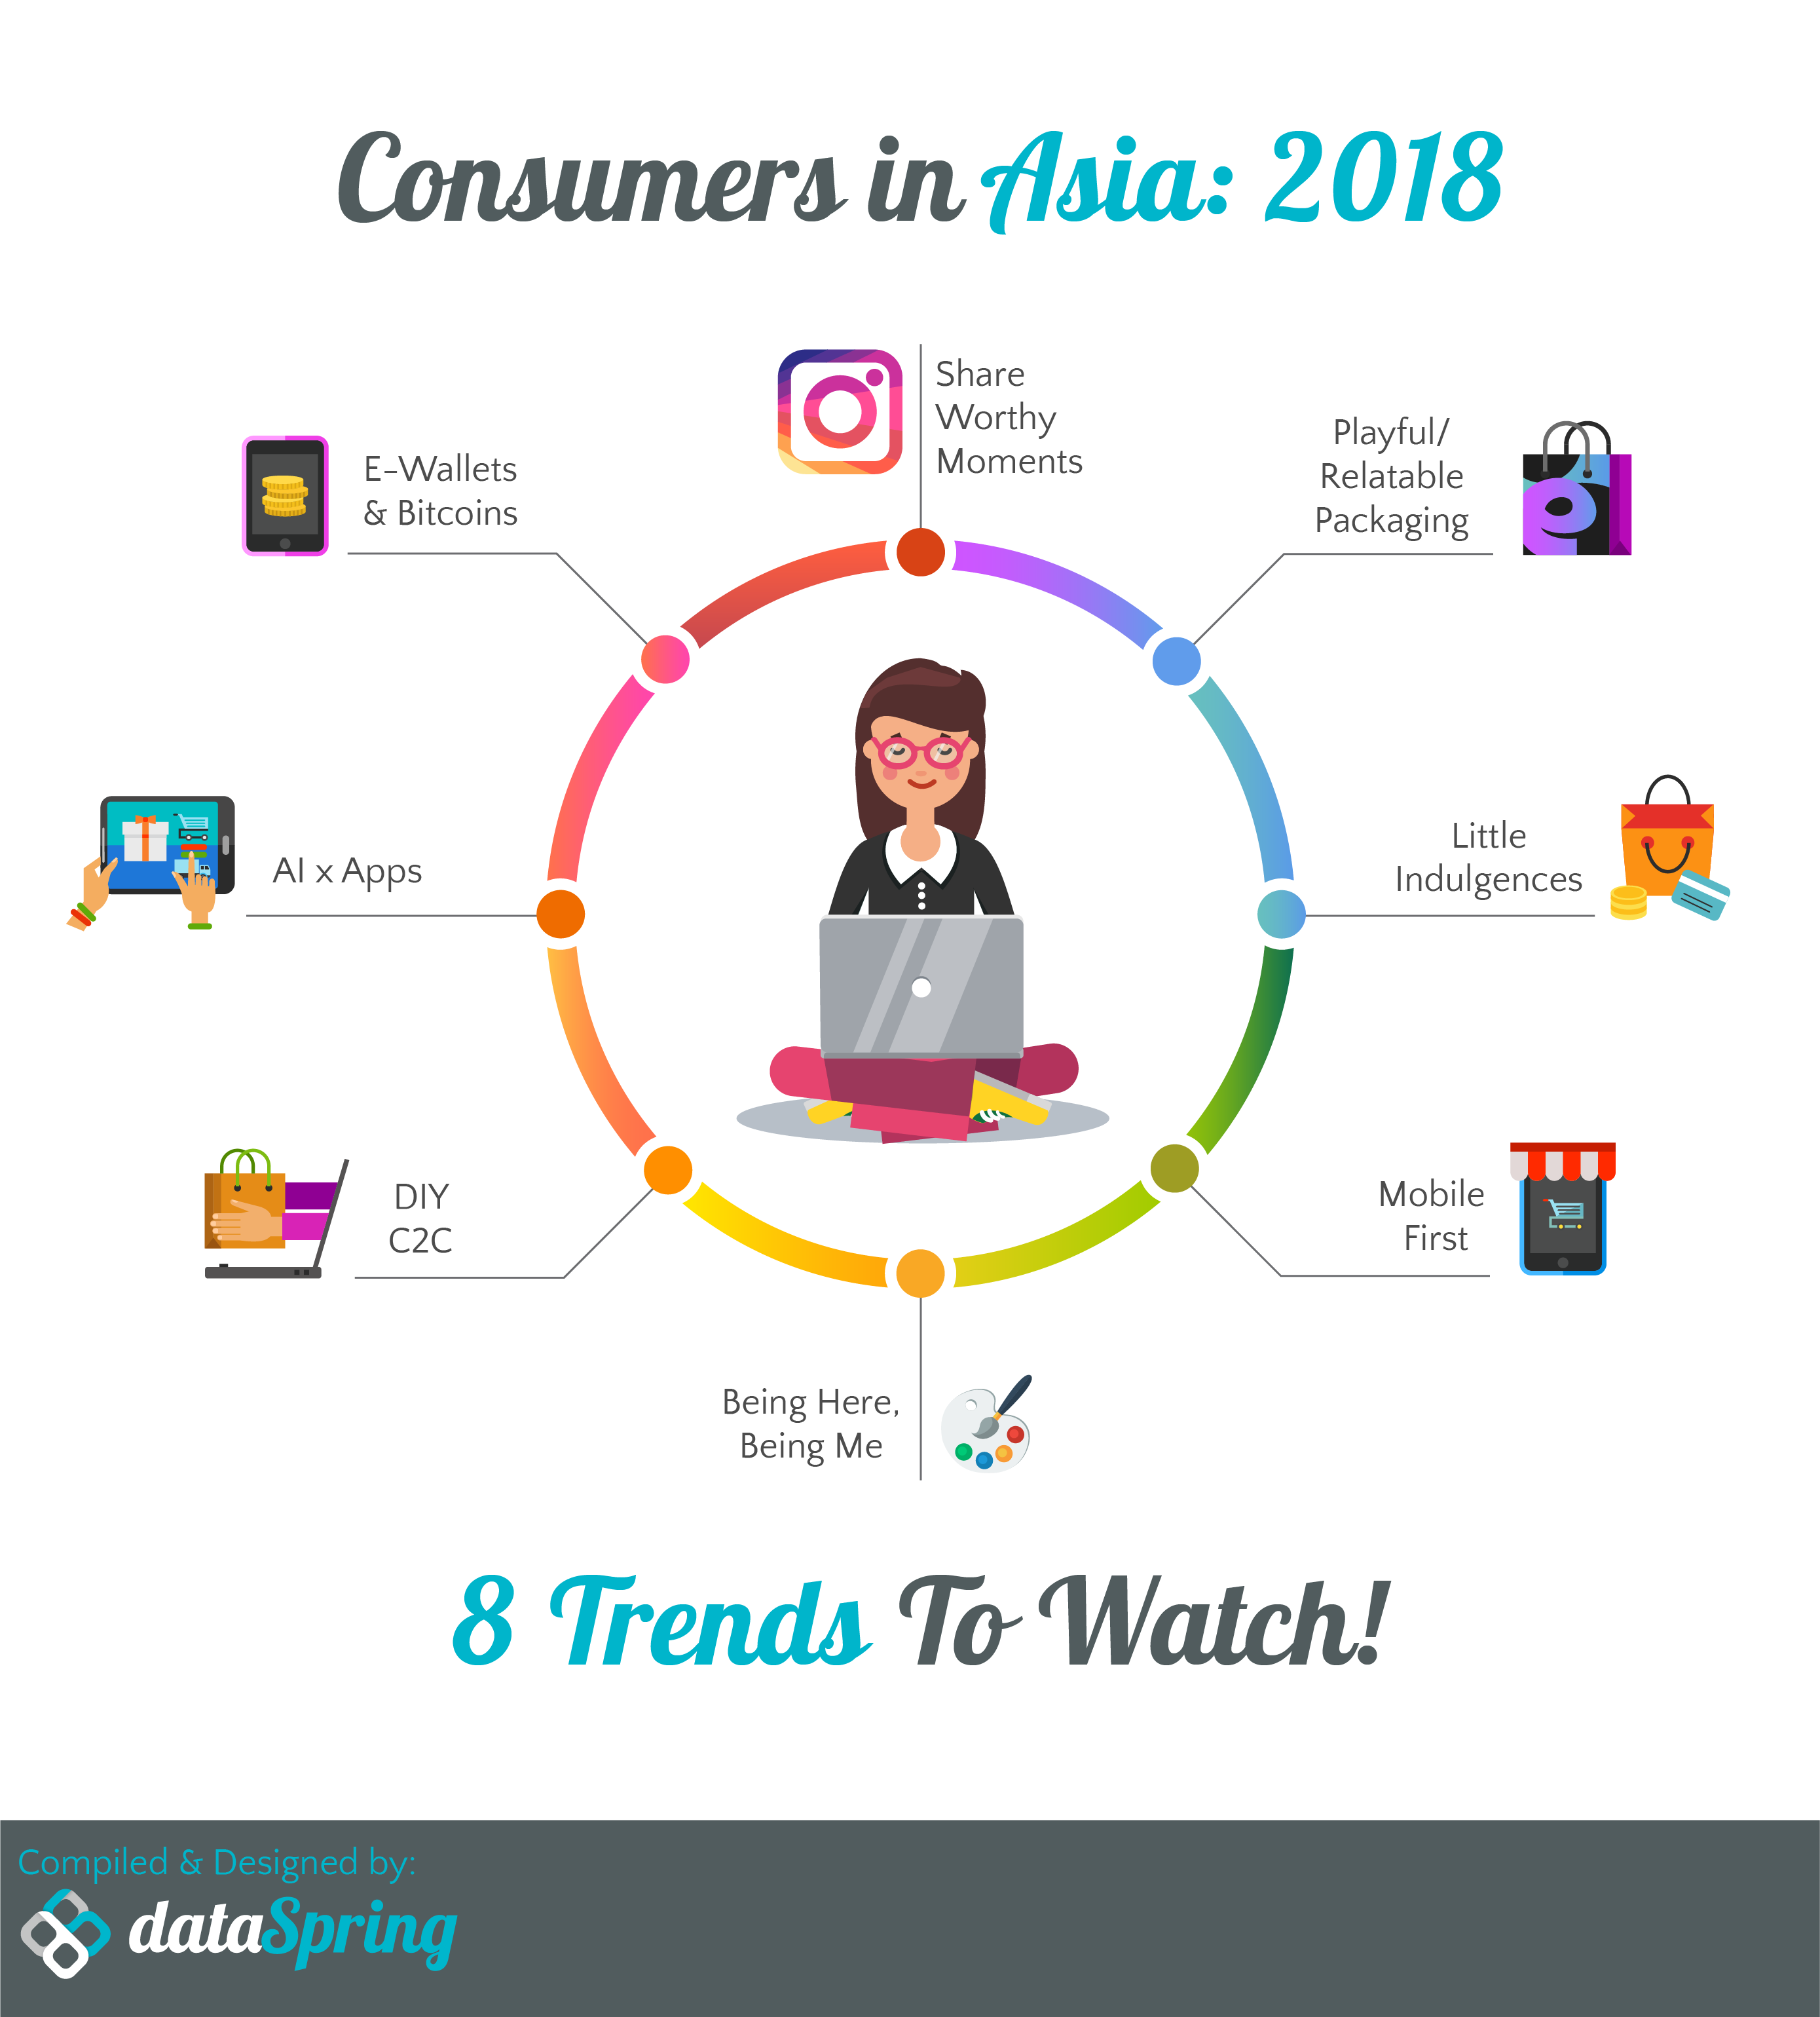 Consumers in Asia Trends in 2018 - Trend Report Asia 2018